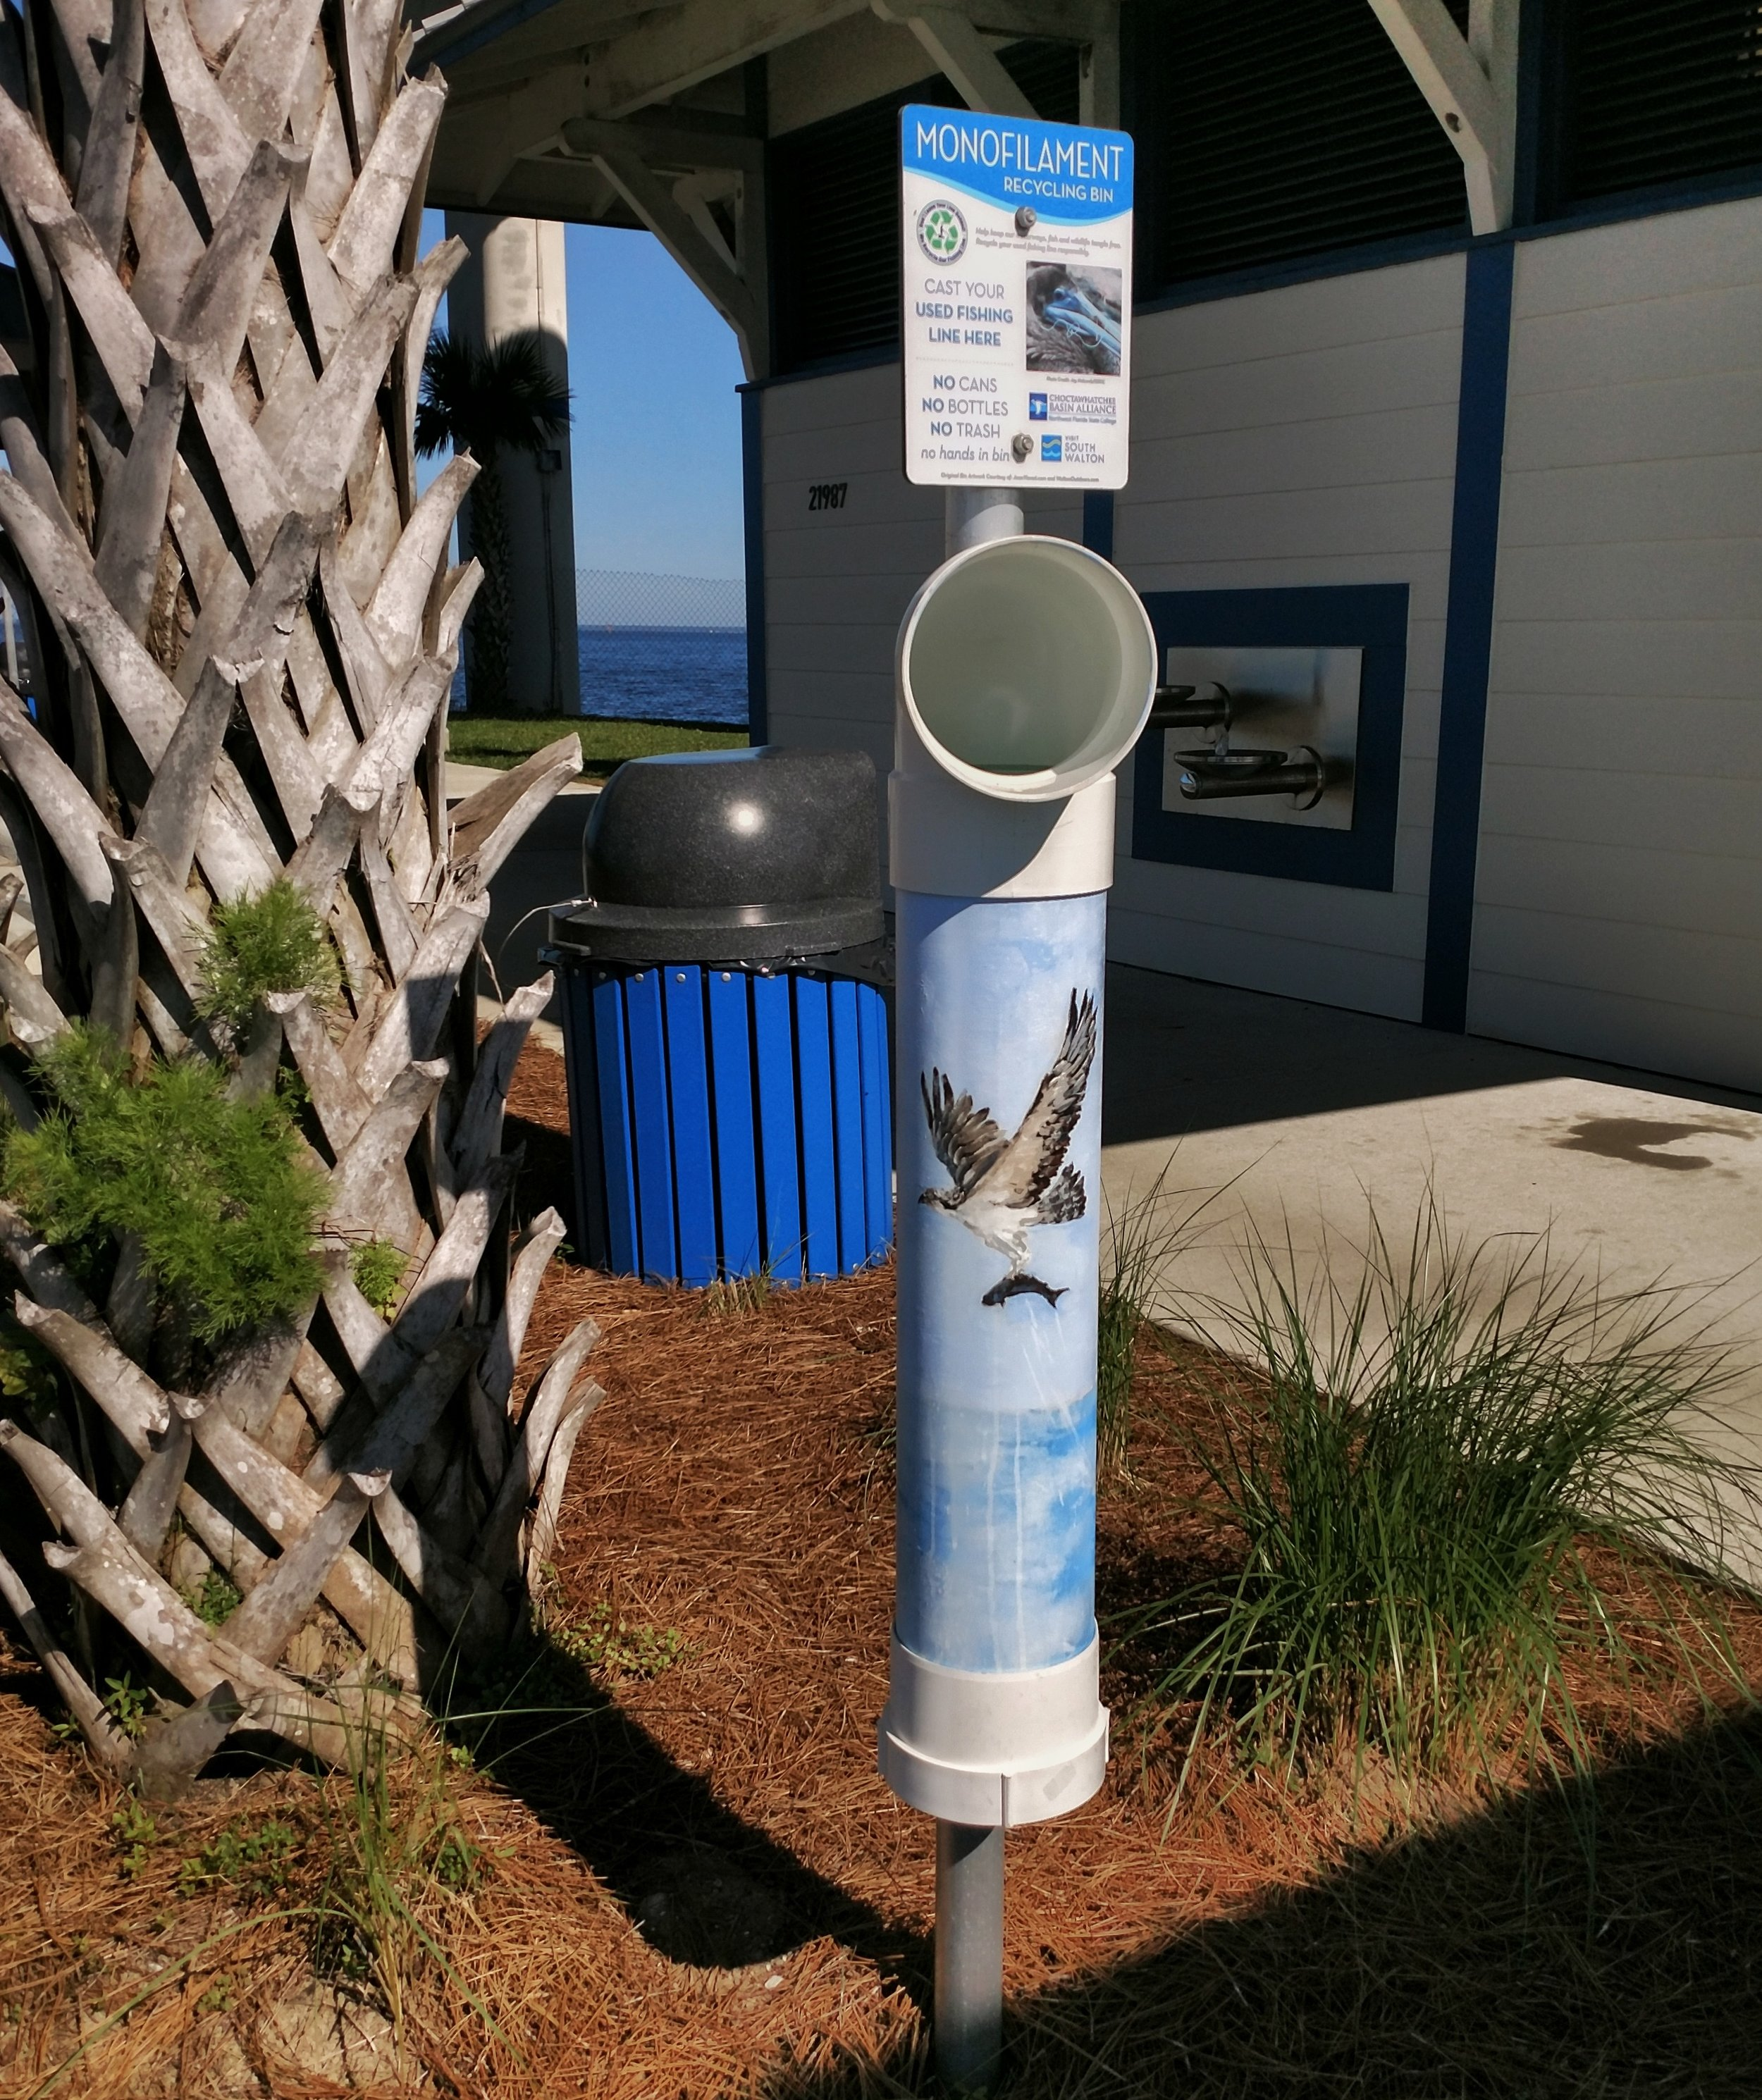 Monofilament collection bins have been placed in several locations along the Emerald Coast, boasting colorful designs by local artists.